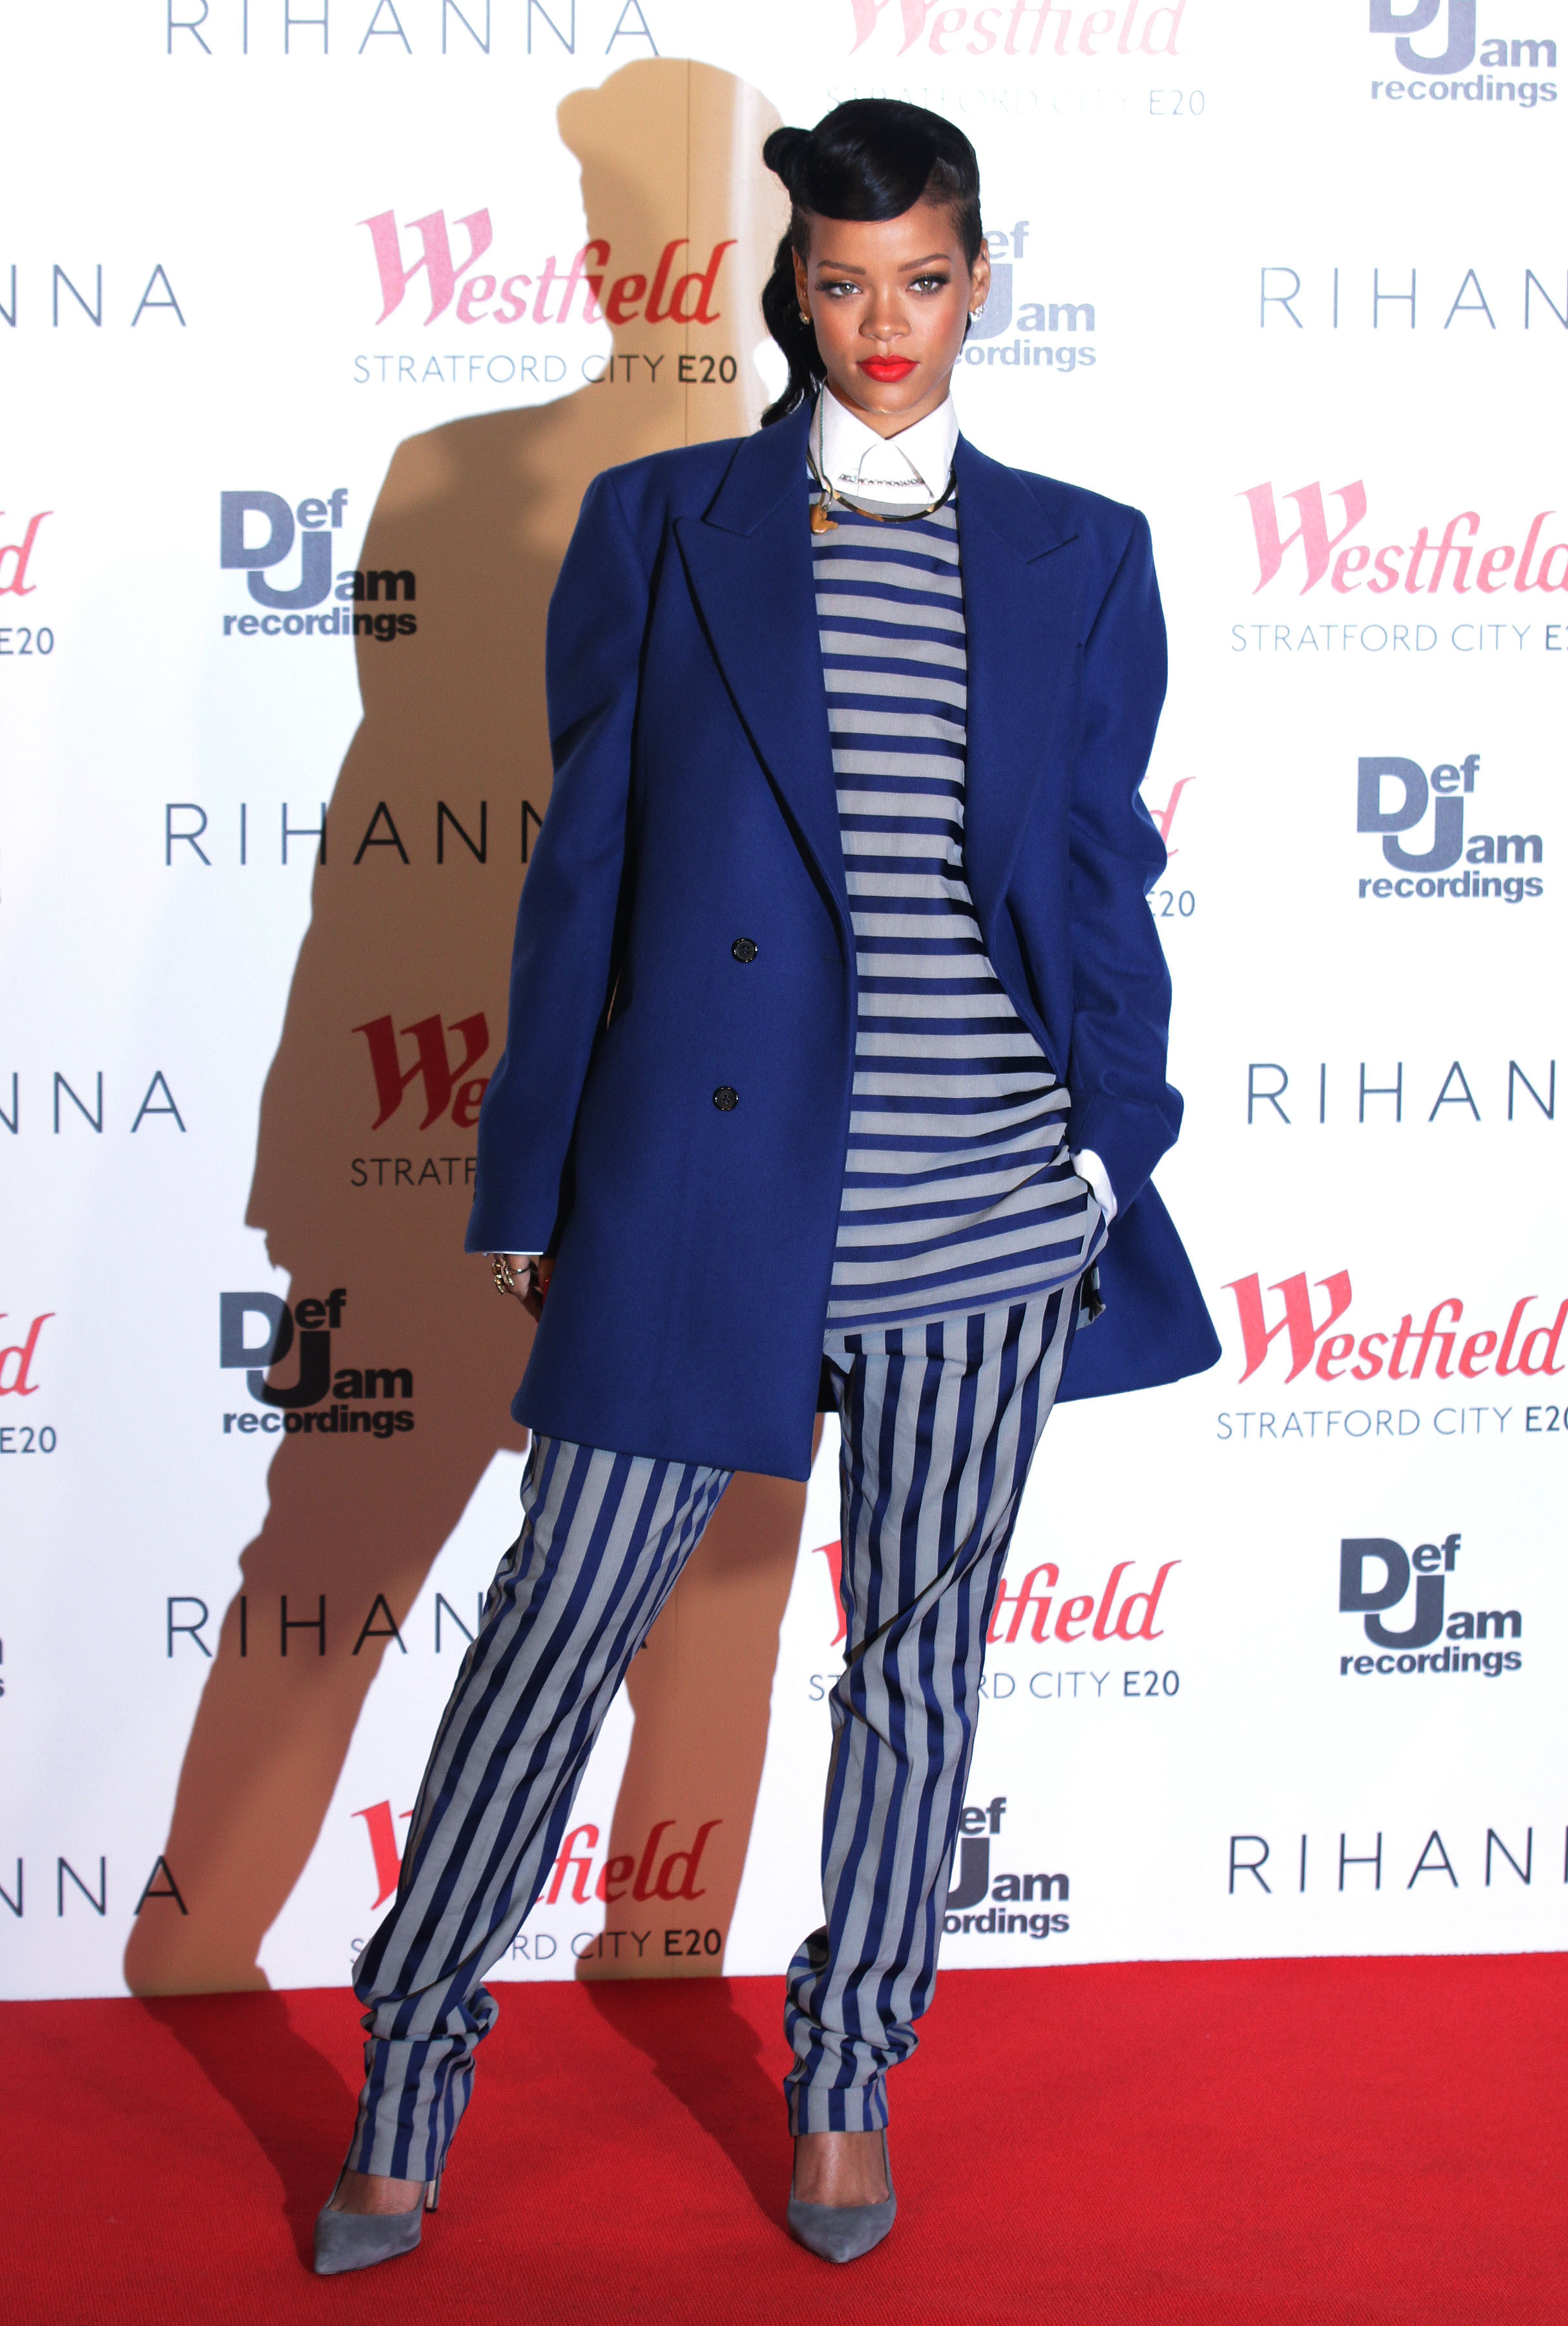 Rihanna during a photocall for the switching-on of the Christmas lights at Westfield Stratford City in east London.